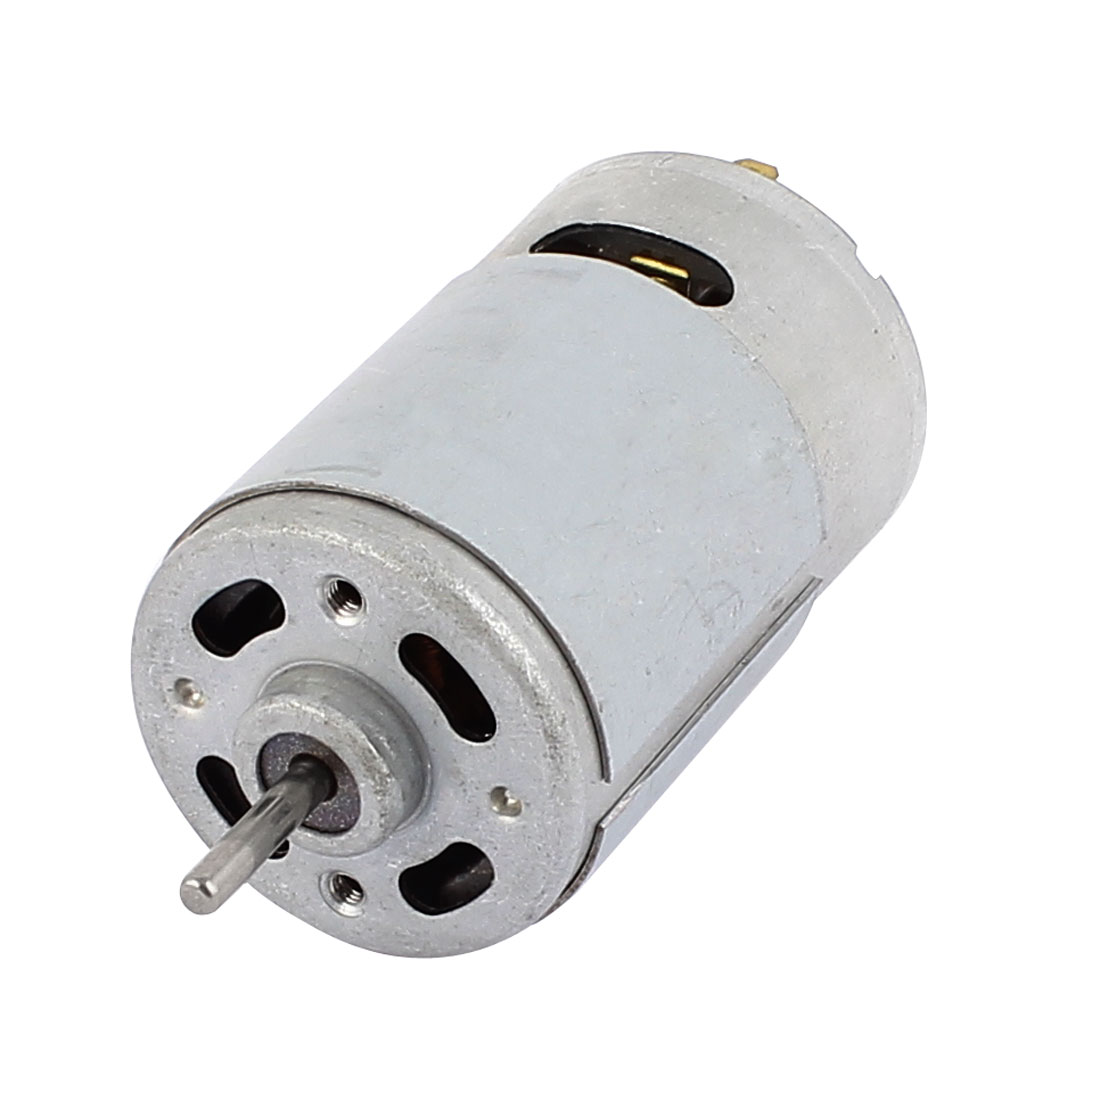 DC12V 6000RPM High Torque 3mm Dia Shaft Magnetic Cylinder Electric DC Motor